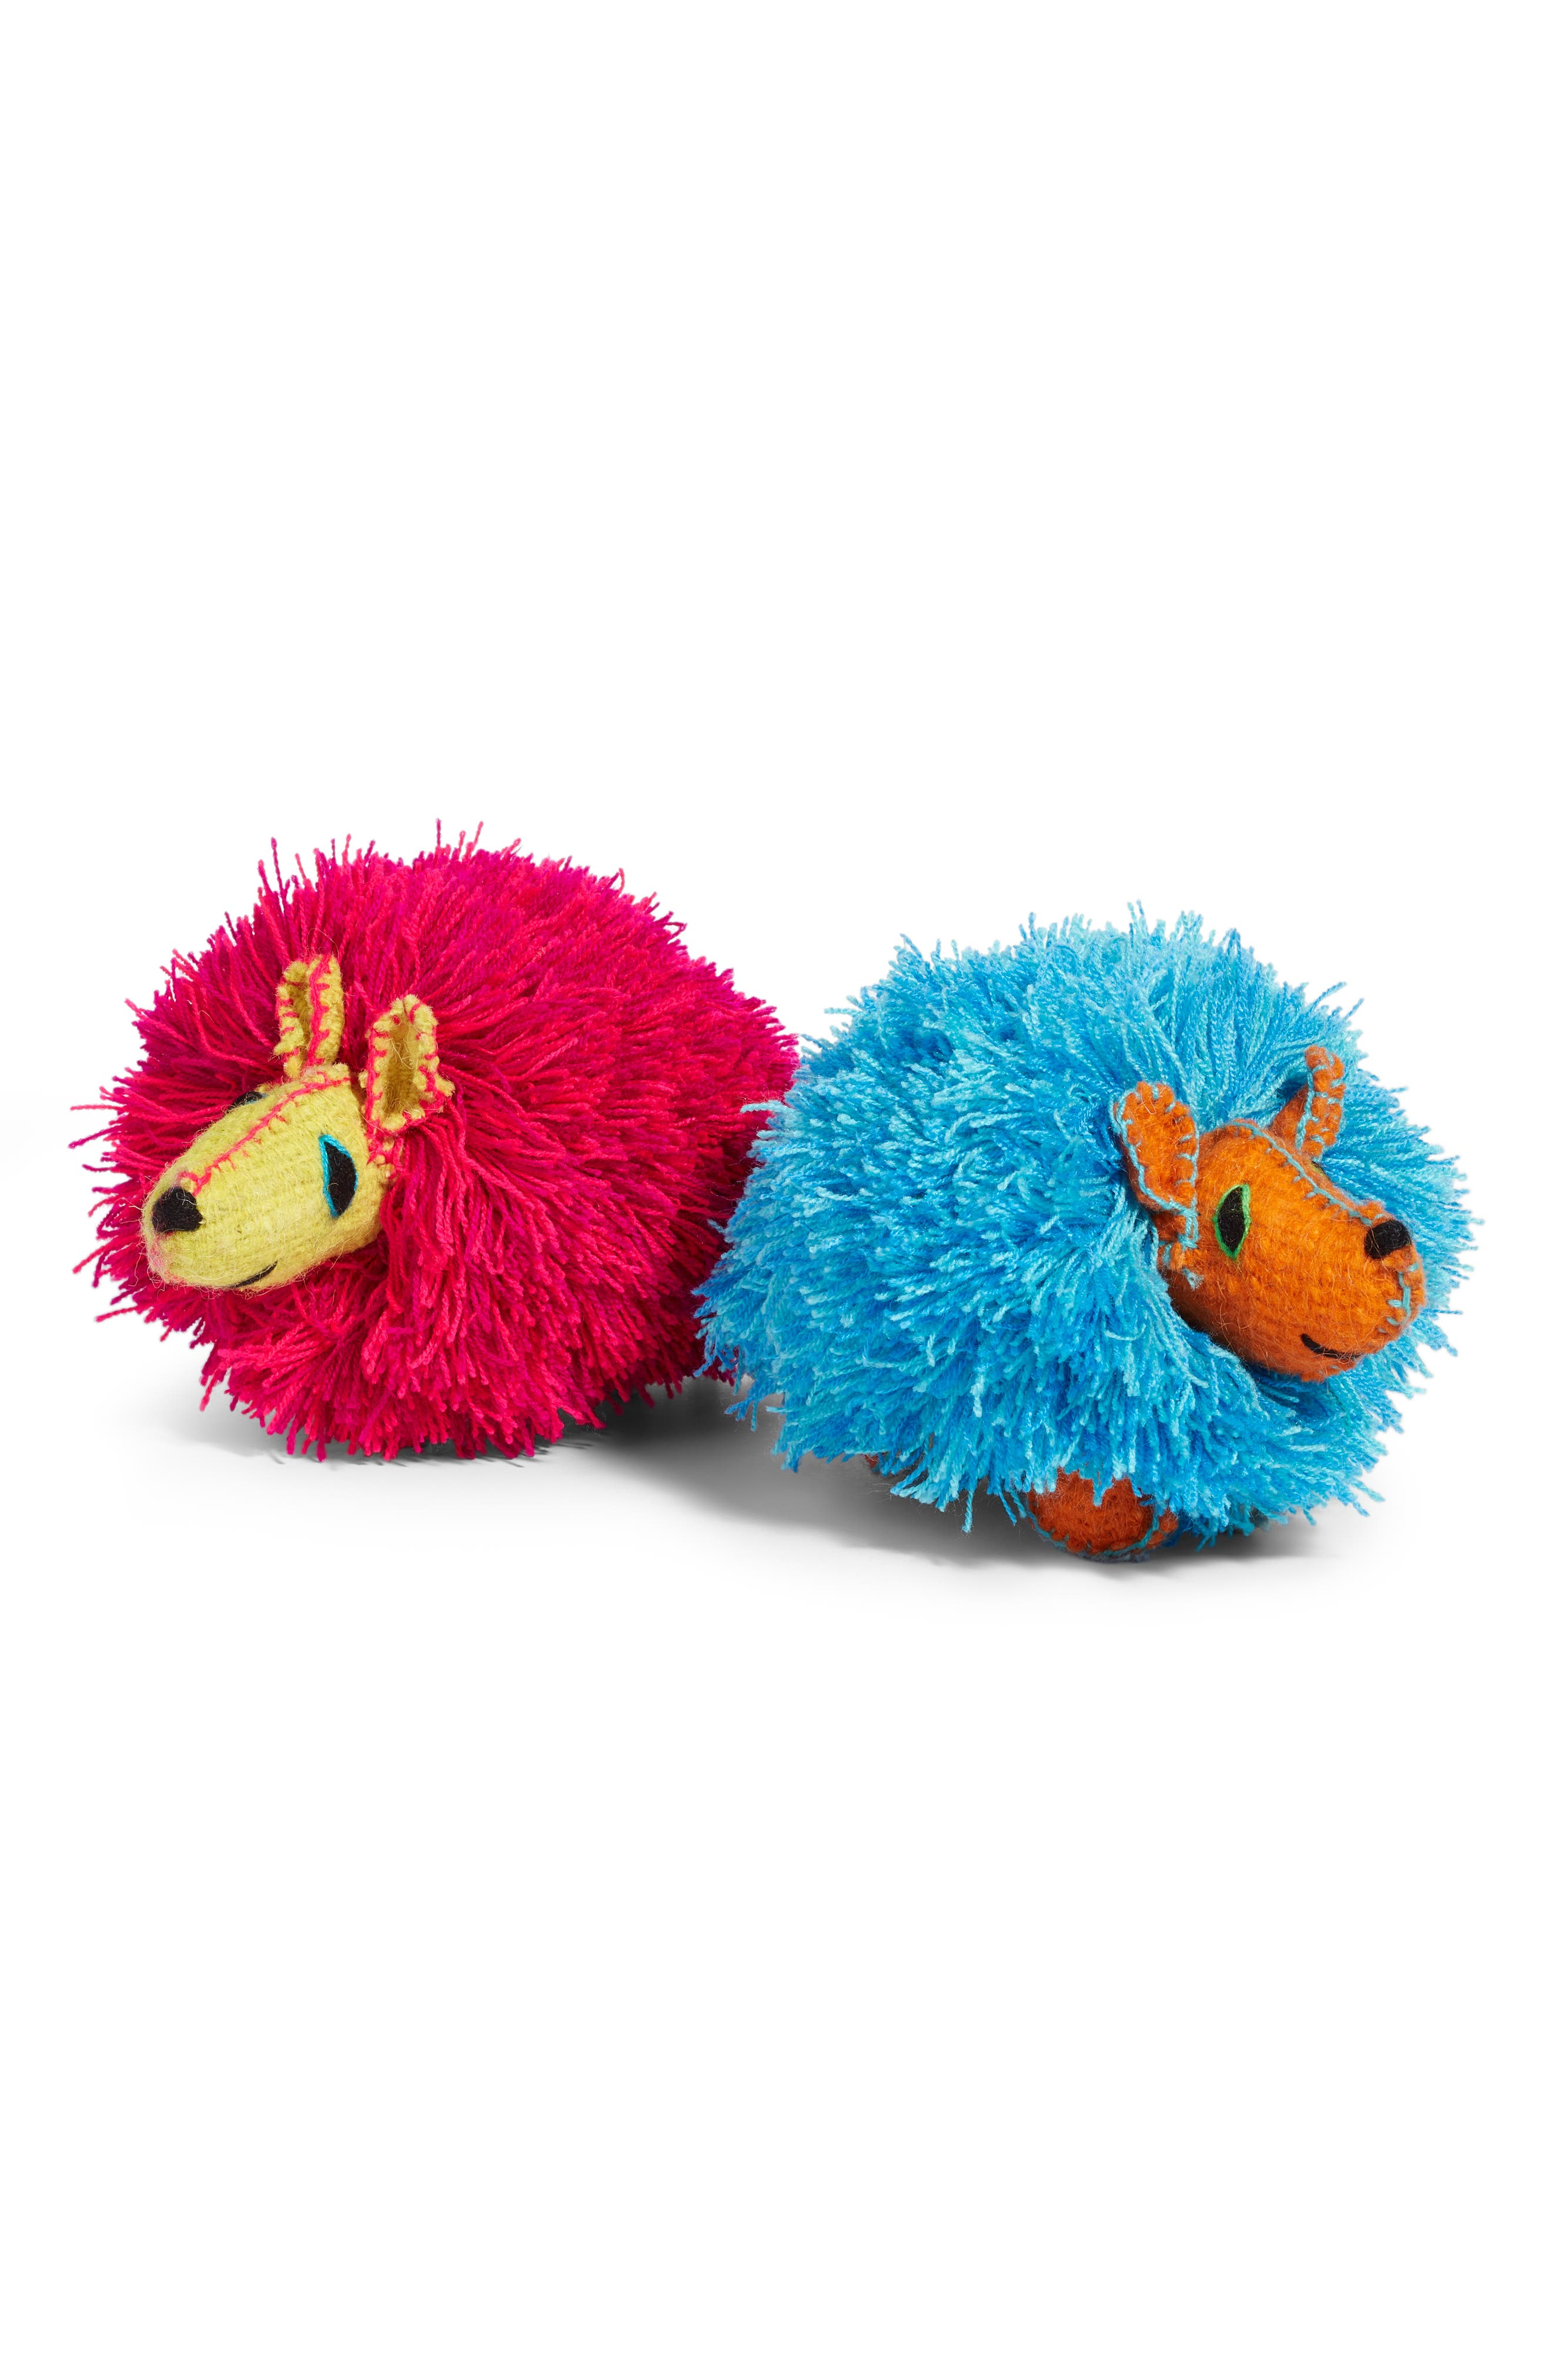 Porcupine Stuffed Animal,                             Alternate thumbnail 3, color,                             MULTI